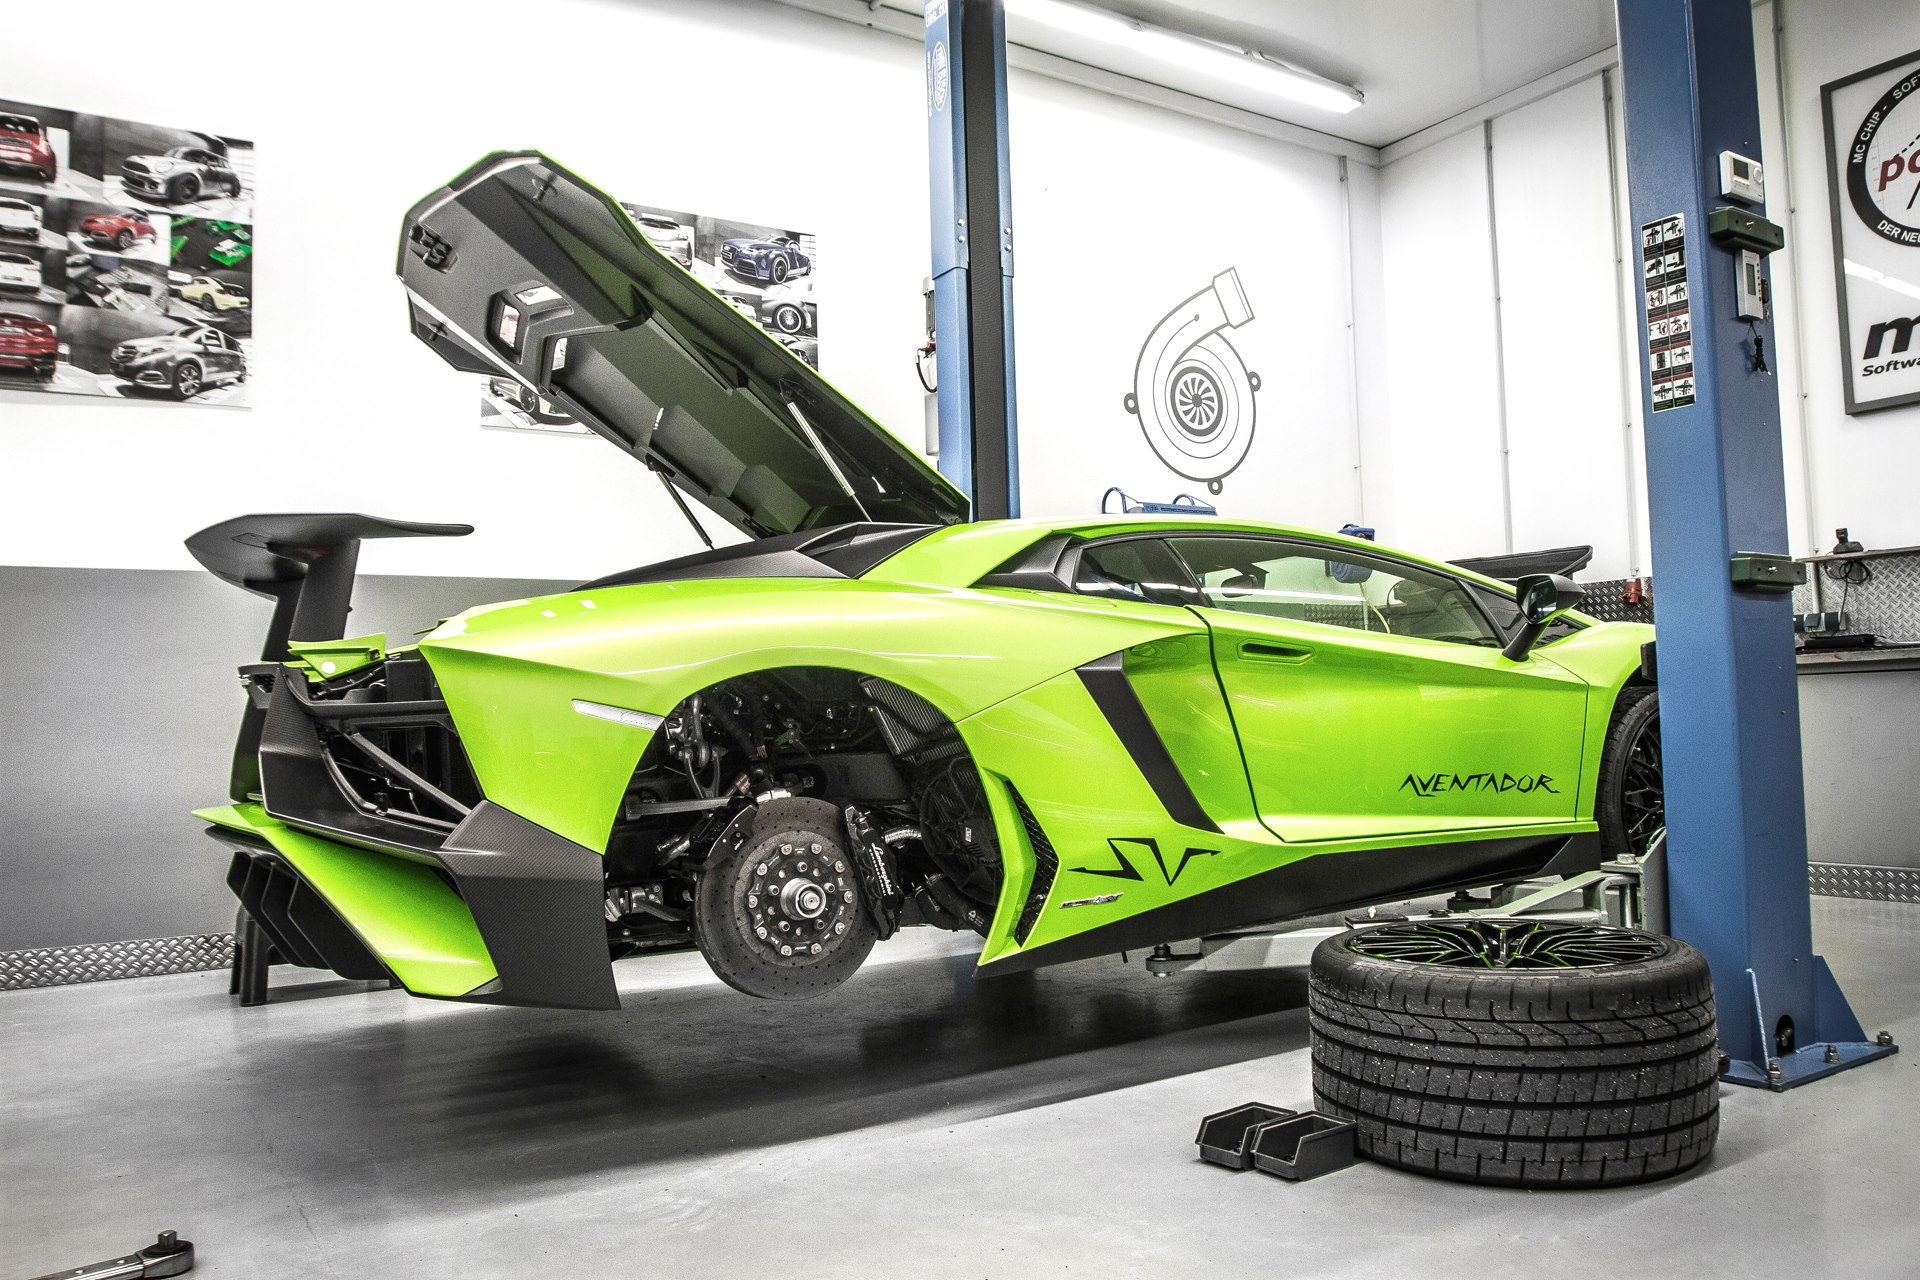 Lamborghini Aventador Sv Gets More Power And Torque From Mcchip Dkr